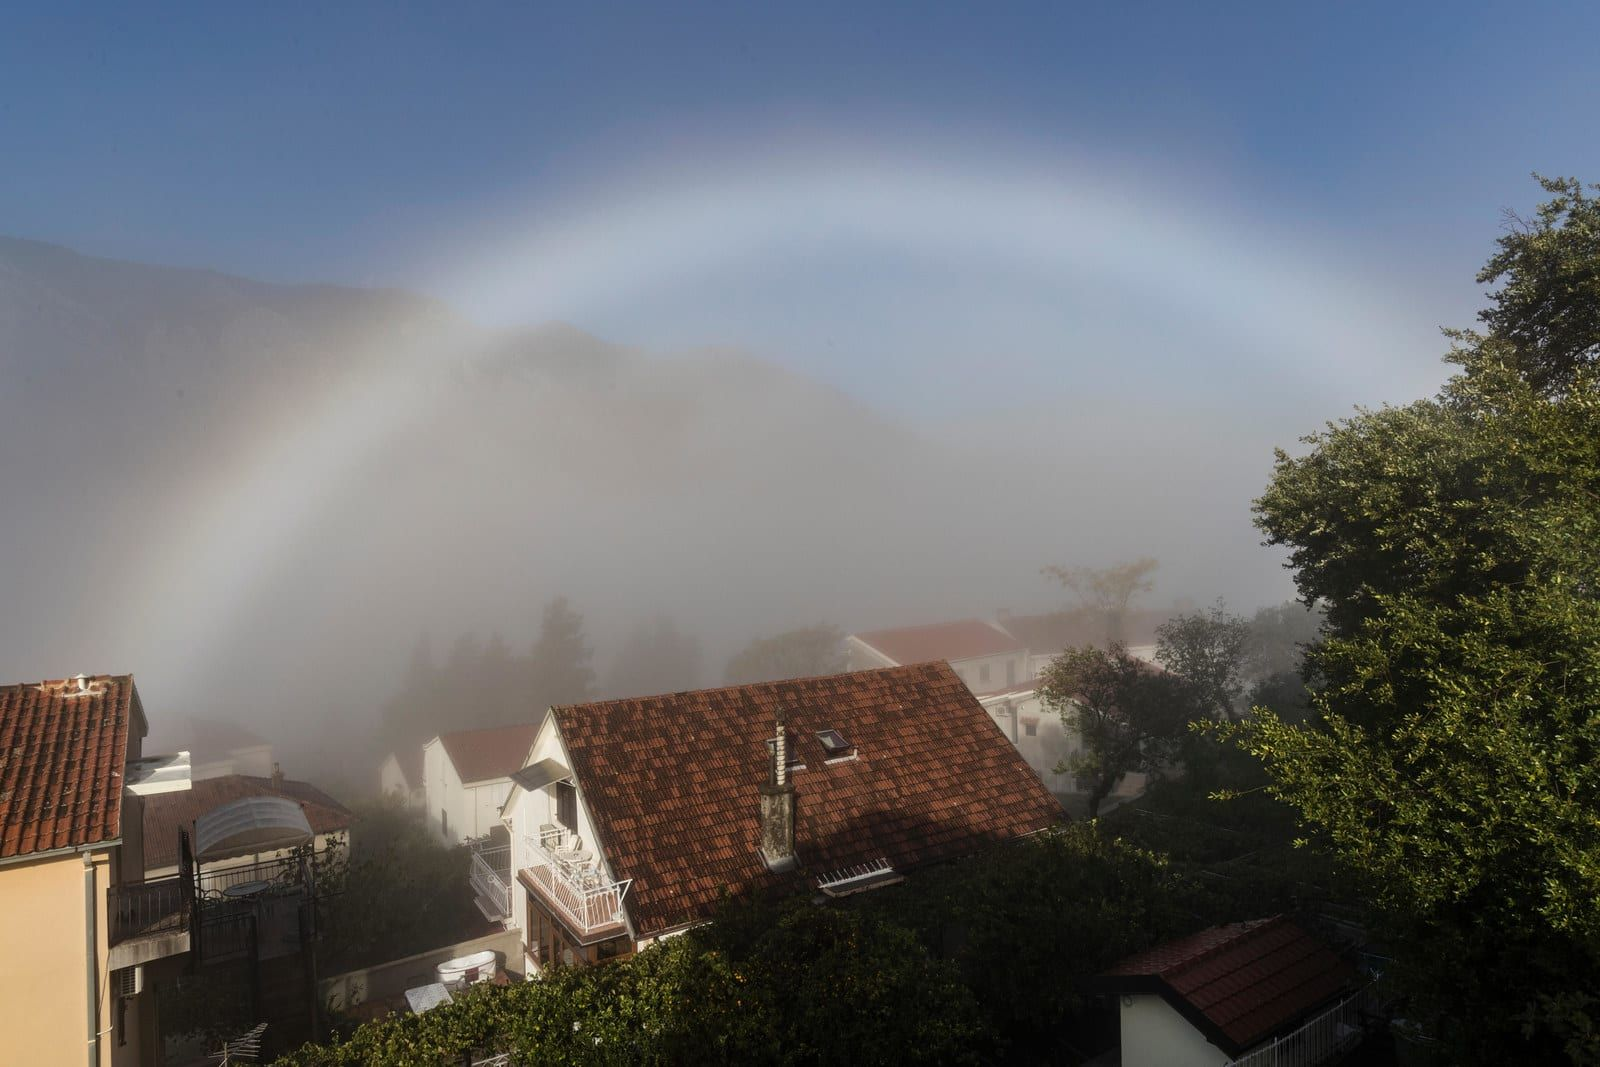 A Rare White Fogbow Has Been Spotted In Scotland